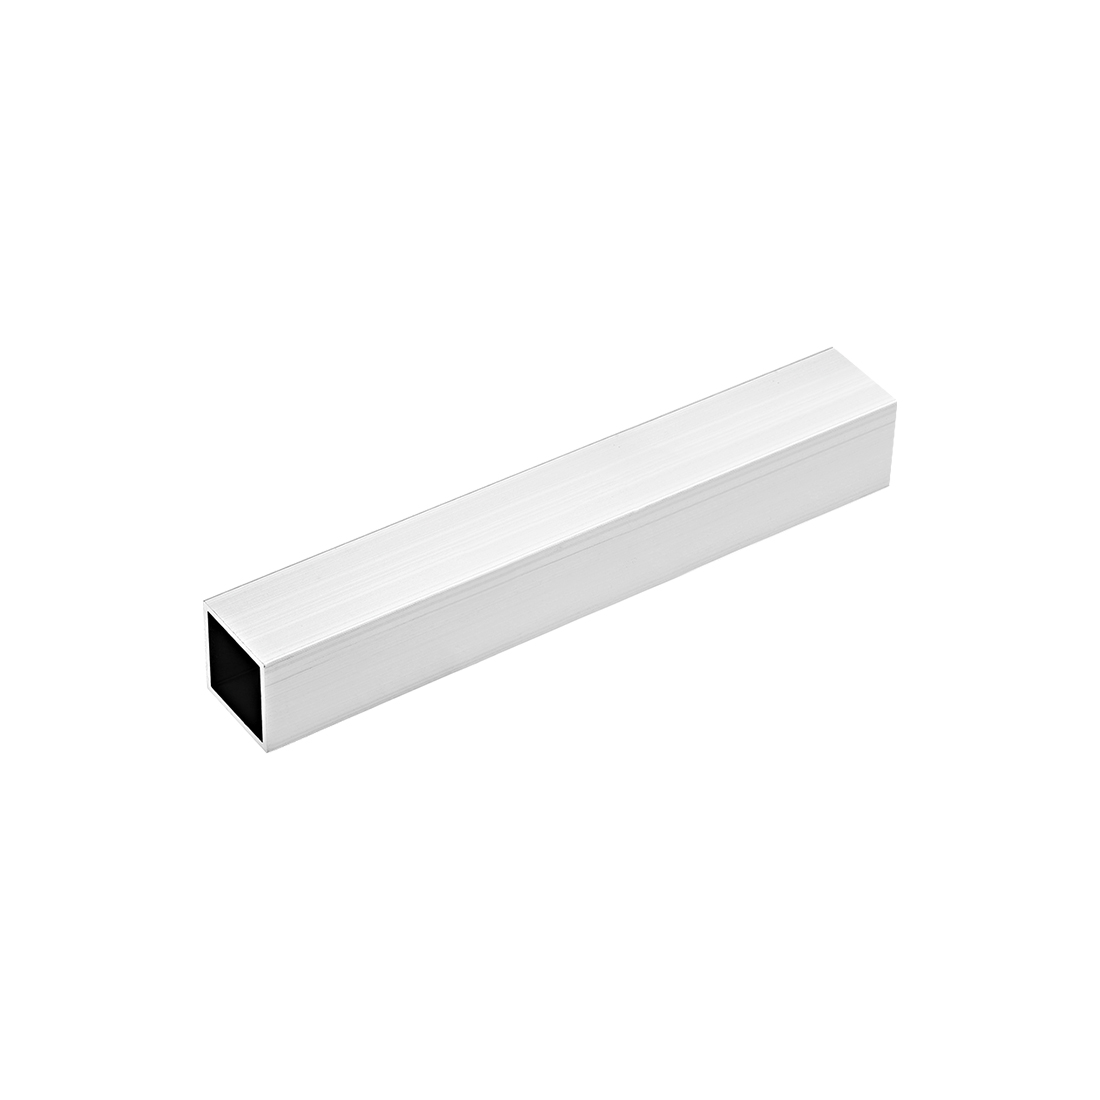 6063 Aluminum Square Tube 30mmx30mmx1.2mm Wall Thickness 200mm Length Tubing